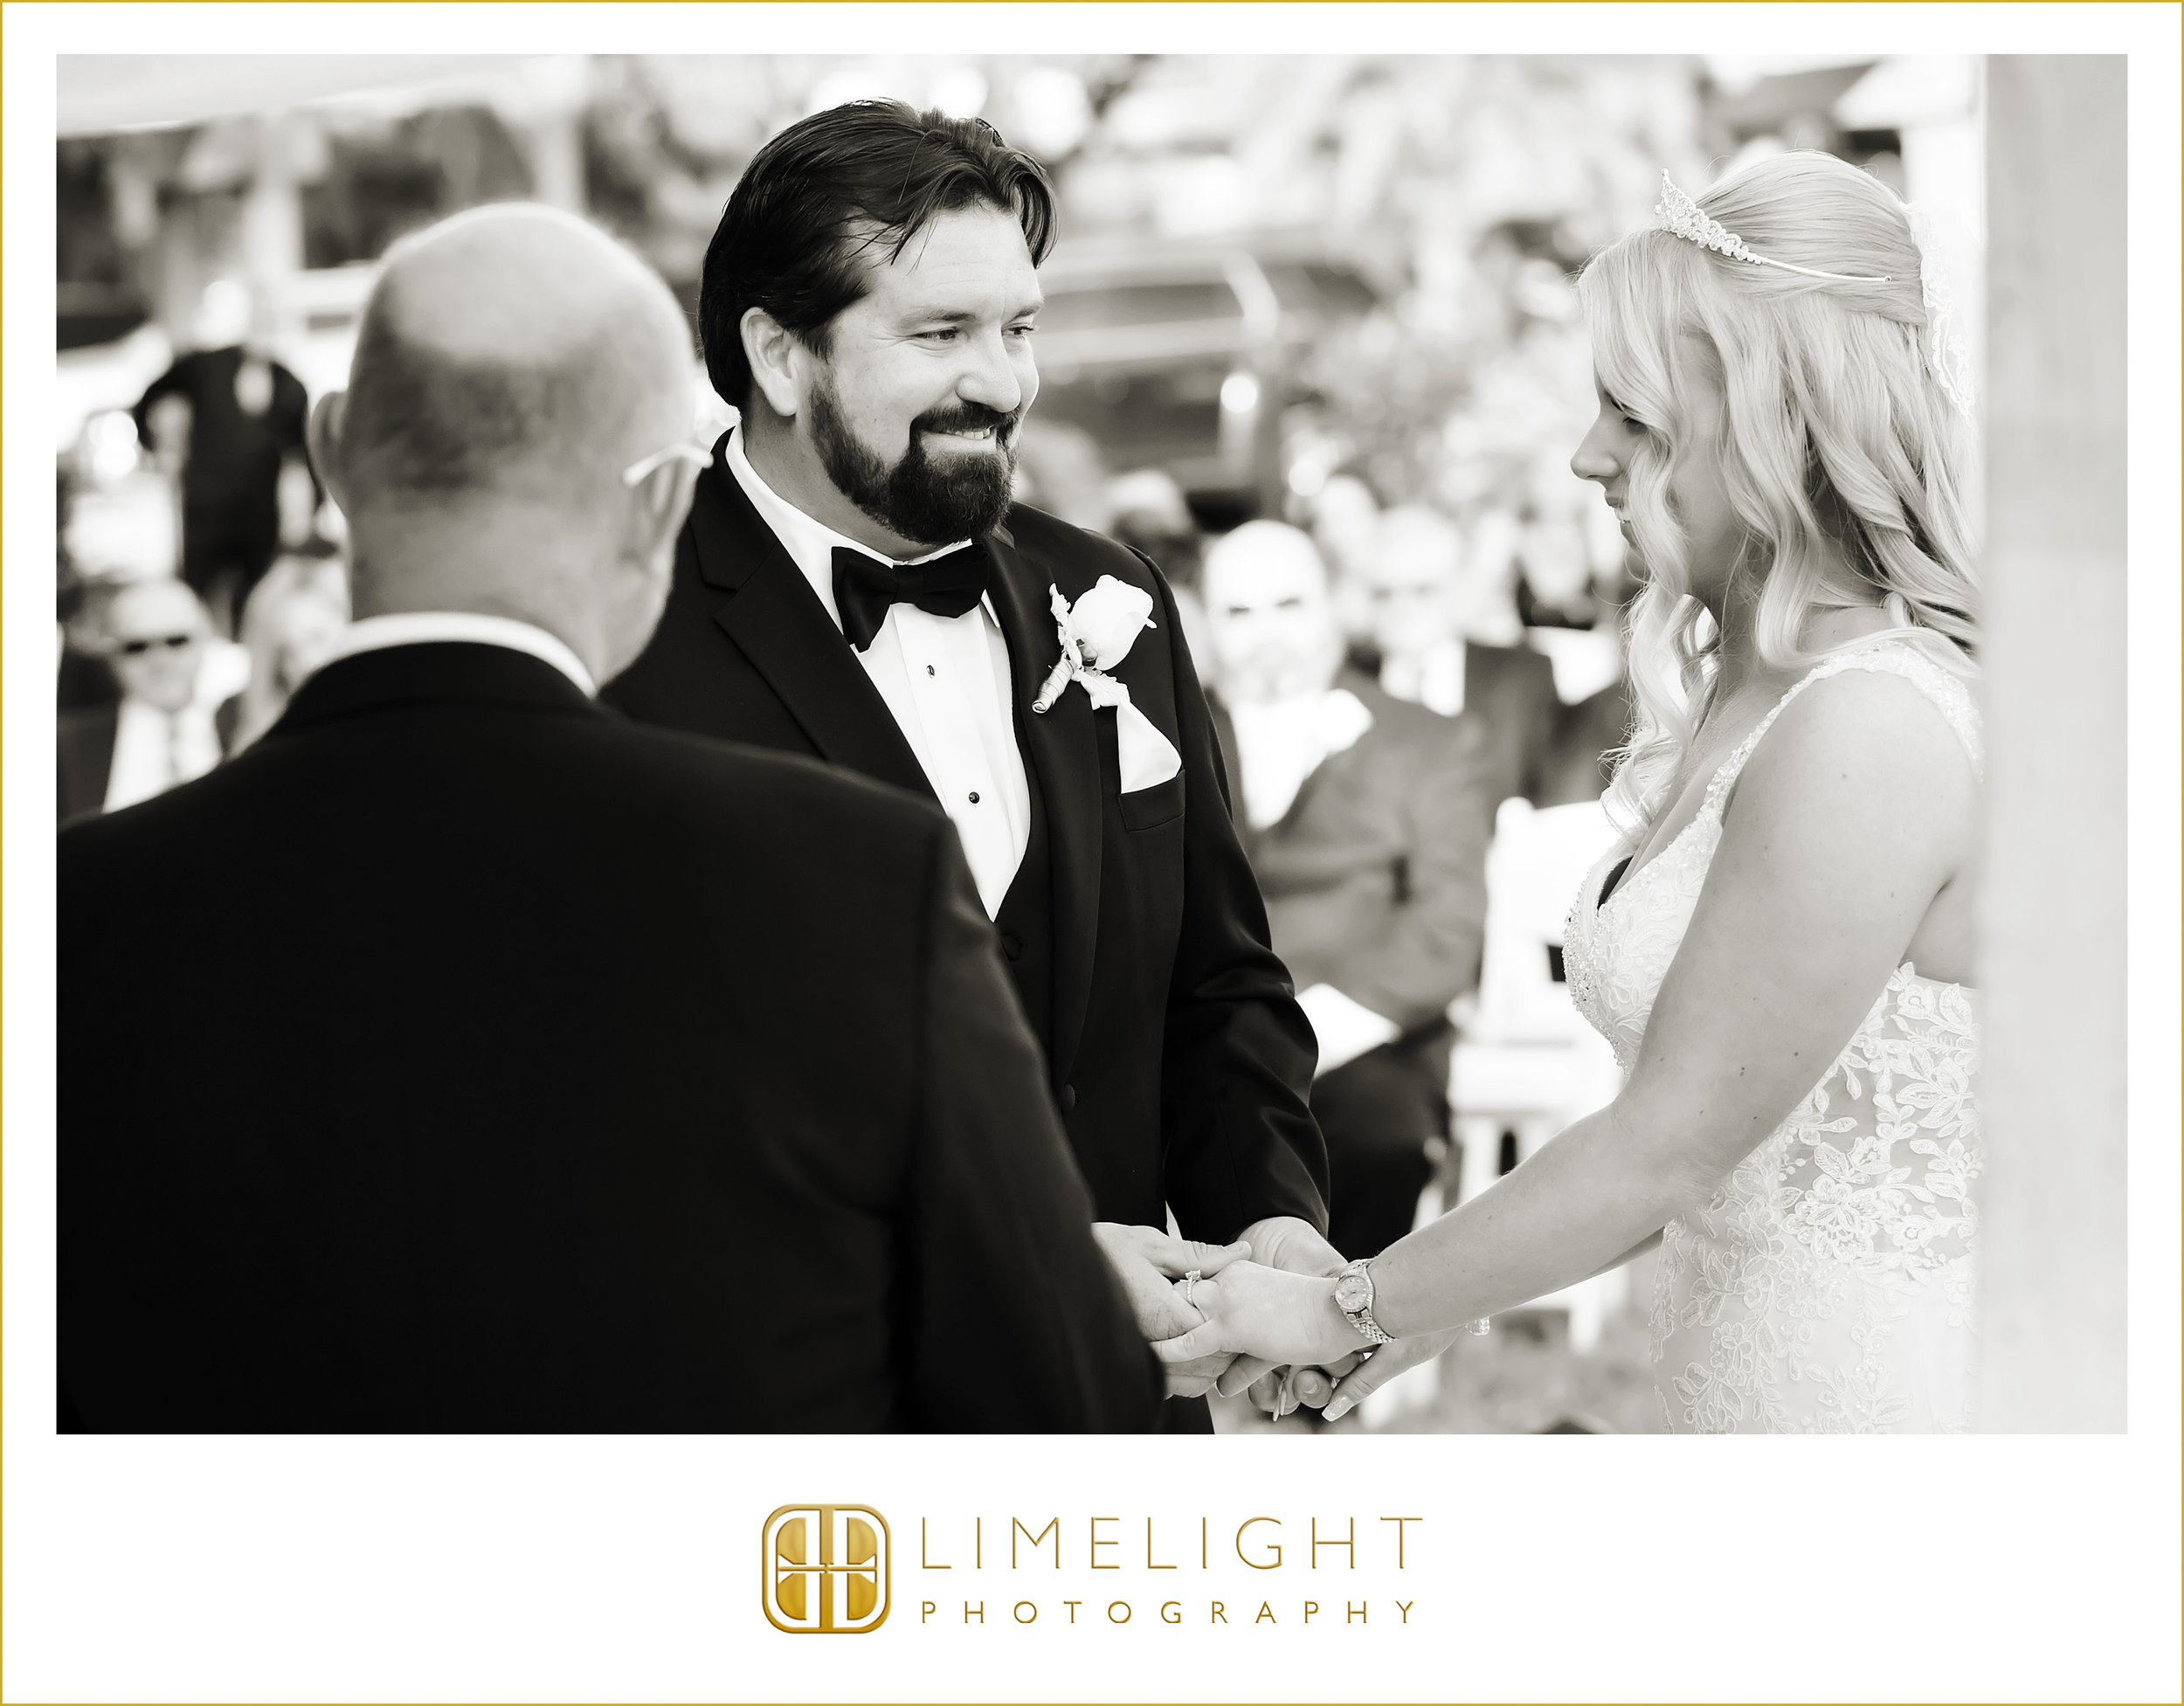 Mr. & Mrs. | Ceremony | Wedding